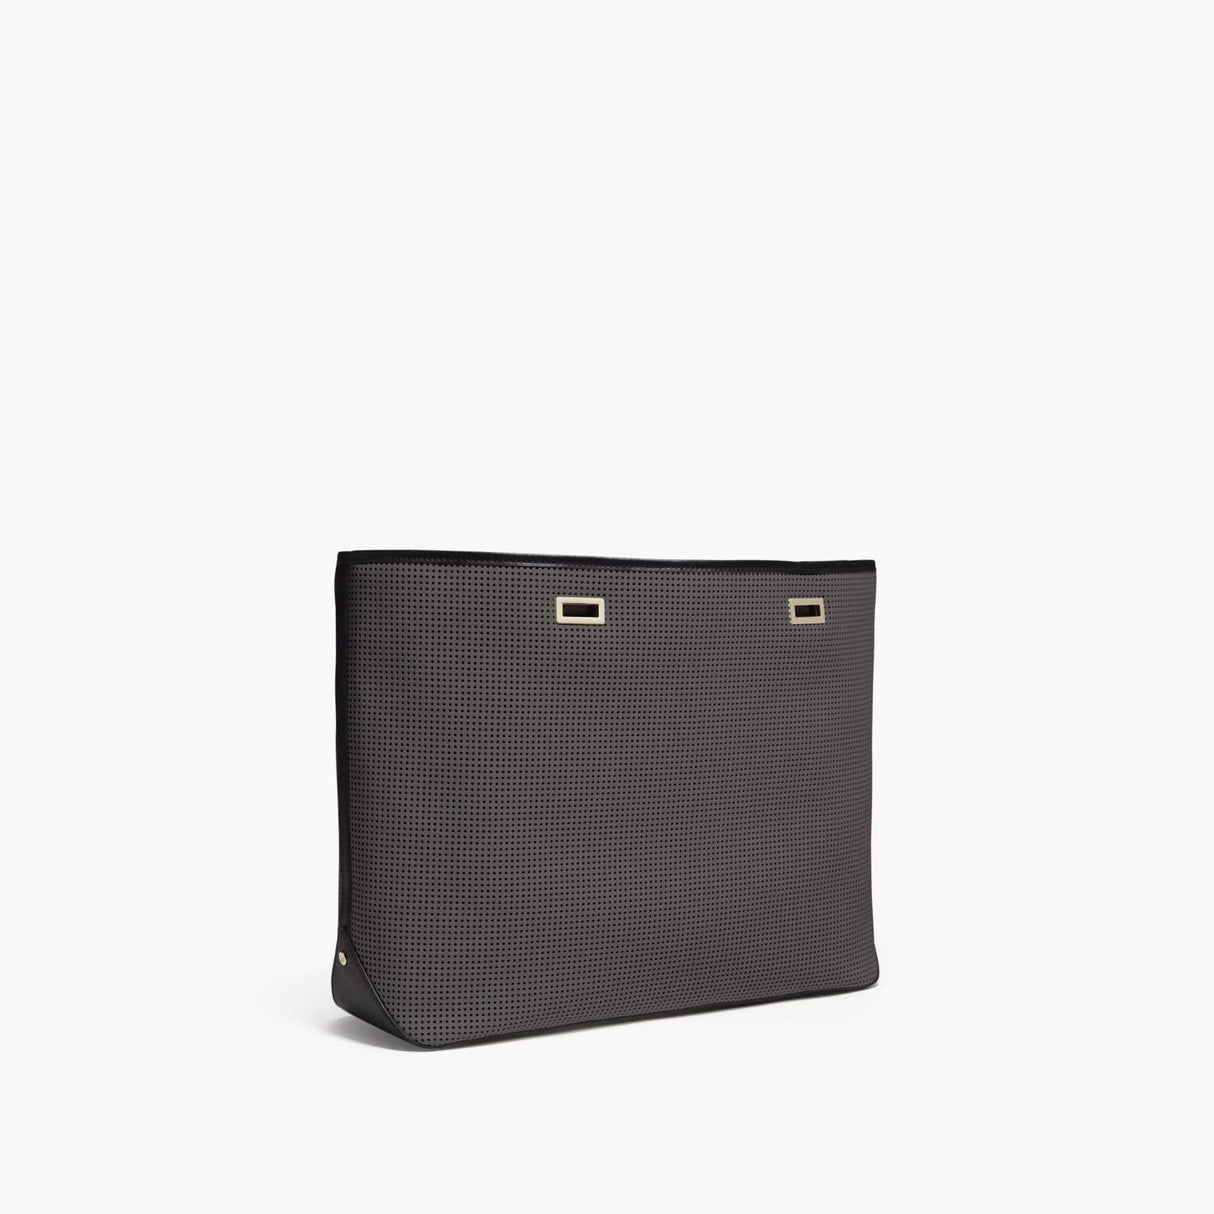 Side - The Seville Shell - Perforated Saffiano Leather - Dark Grey / Gold / Black - Tote - Lo & Sons